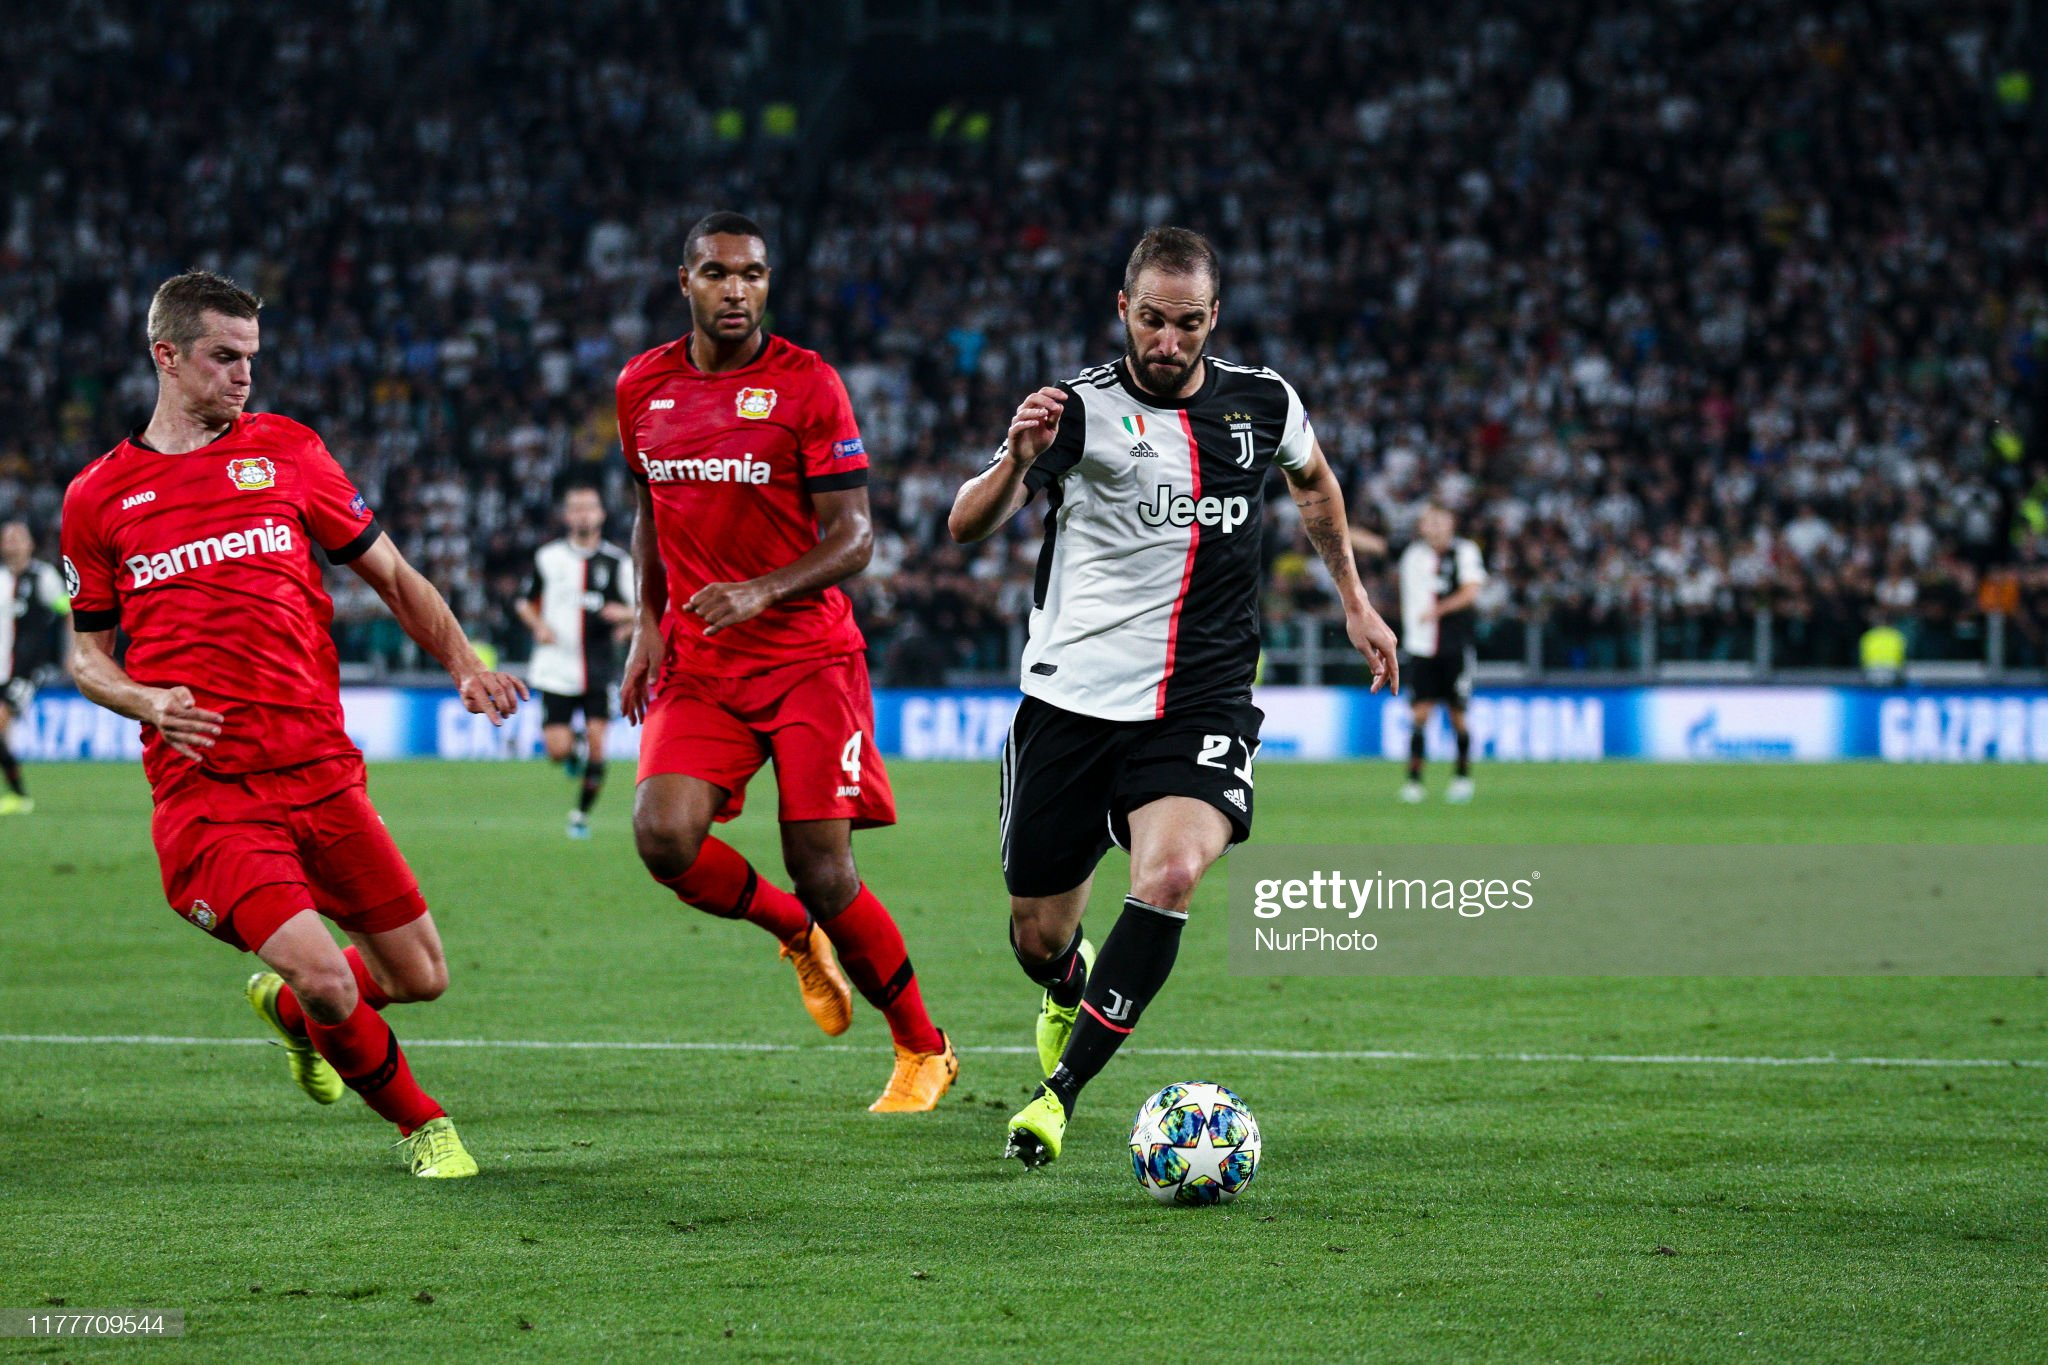 Bayer Leverkusen v Juventus preview, prediction and odds